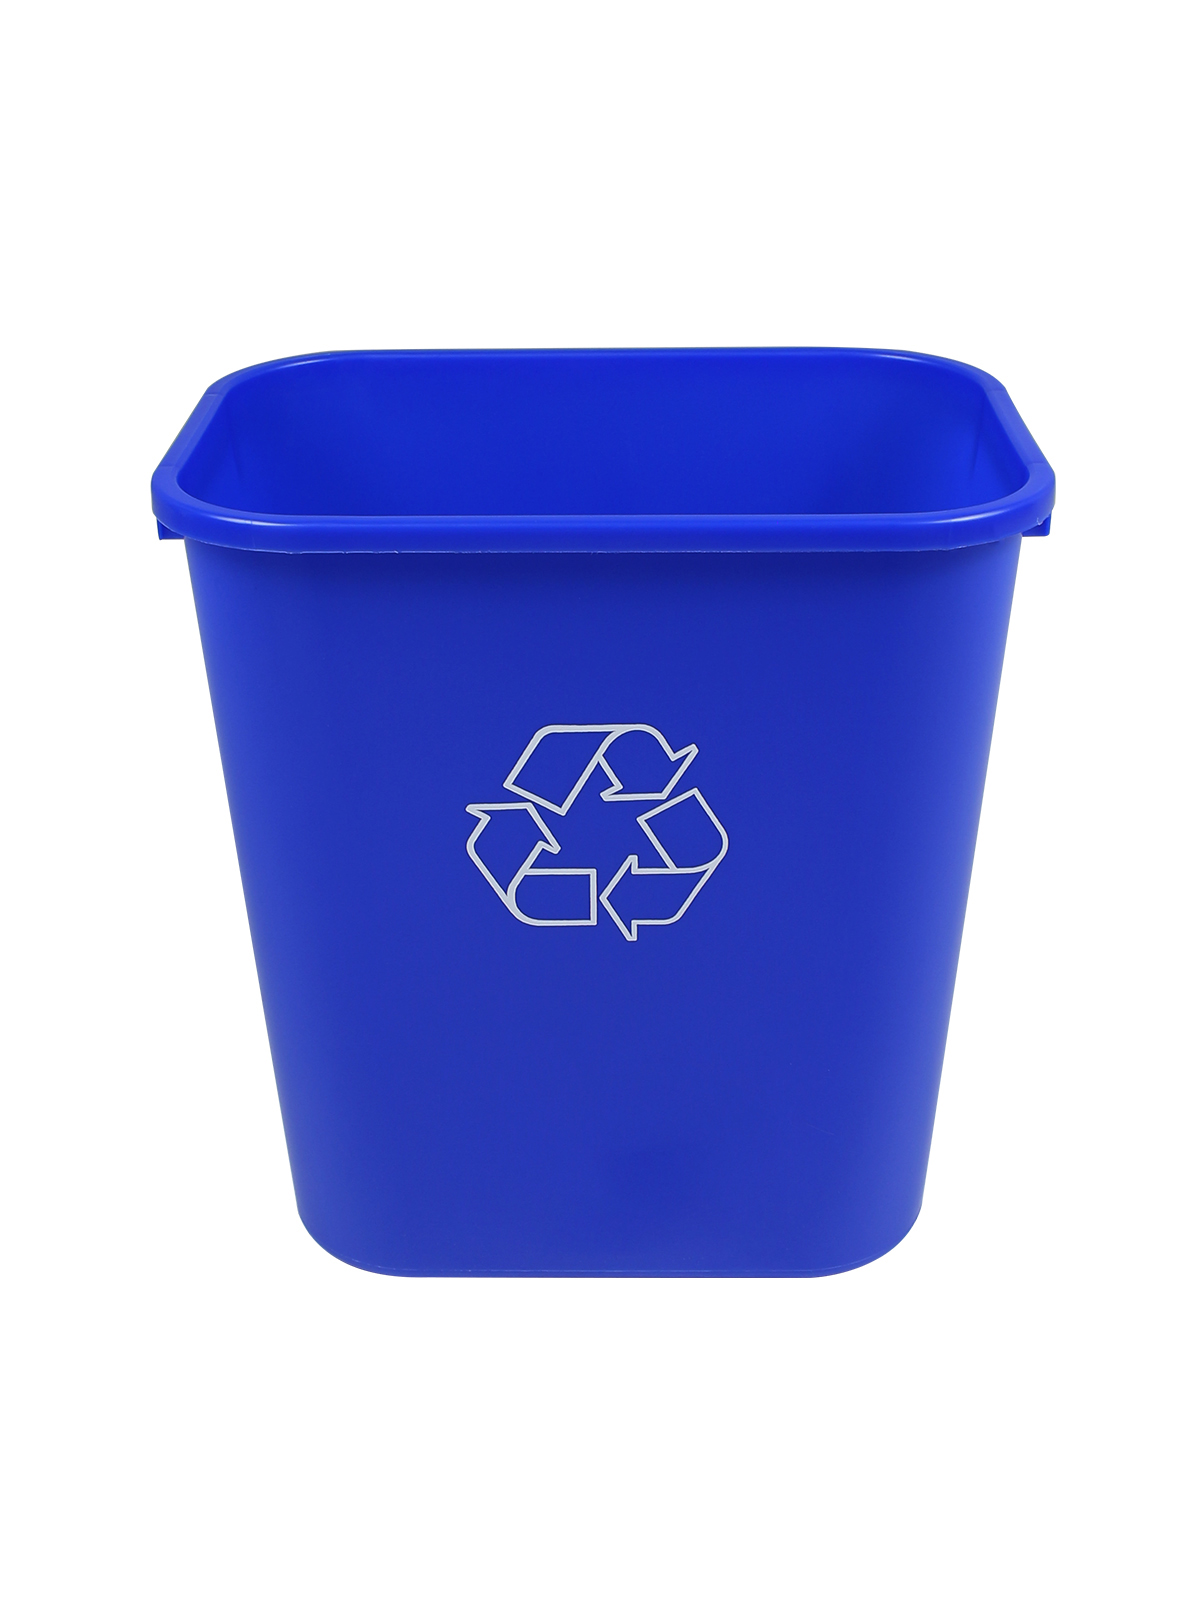 RECYCLING & WASTE BASKET (12 Pack) - Single - 28 Q - Mobius Loop - Full - Blue